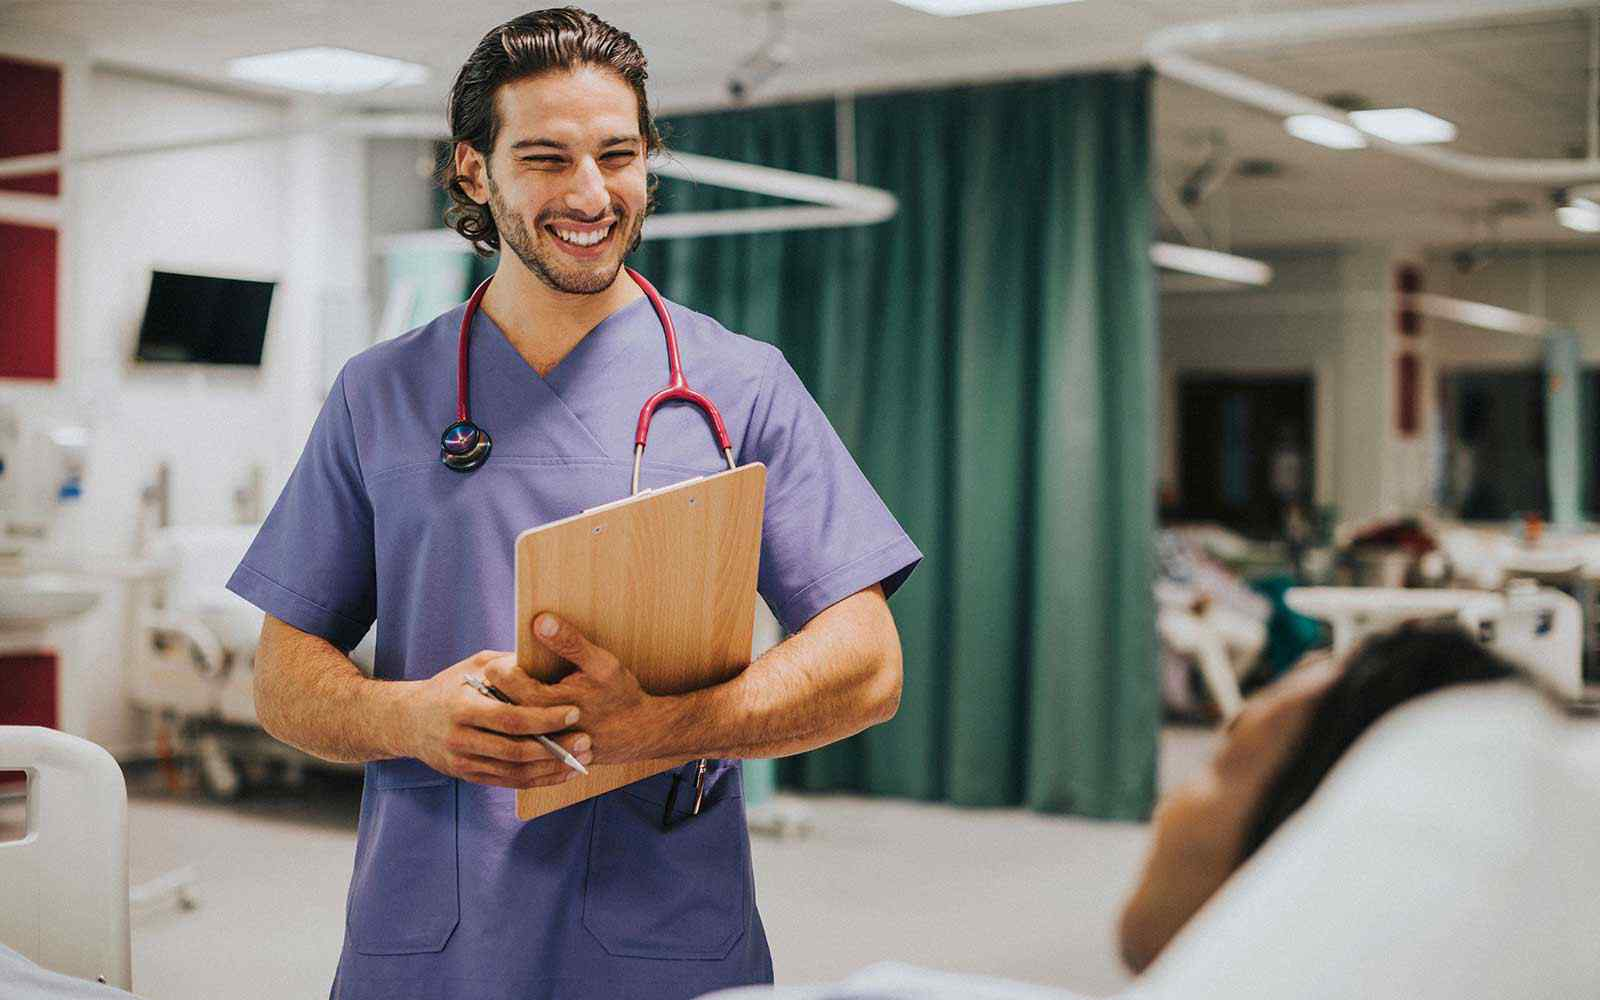 A student nurse in blue scrubs smiles at a patient. He is holding a clipboard and stethoscope.